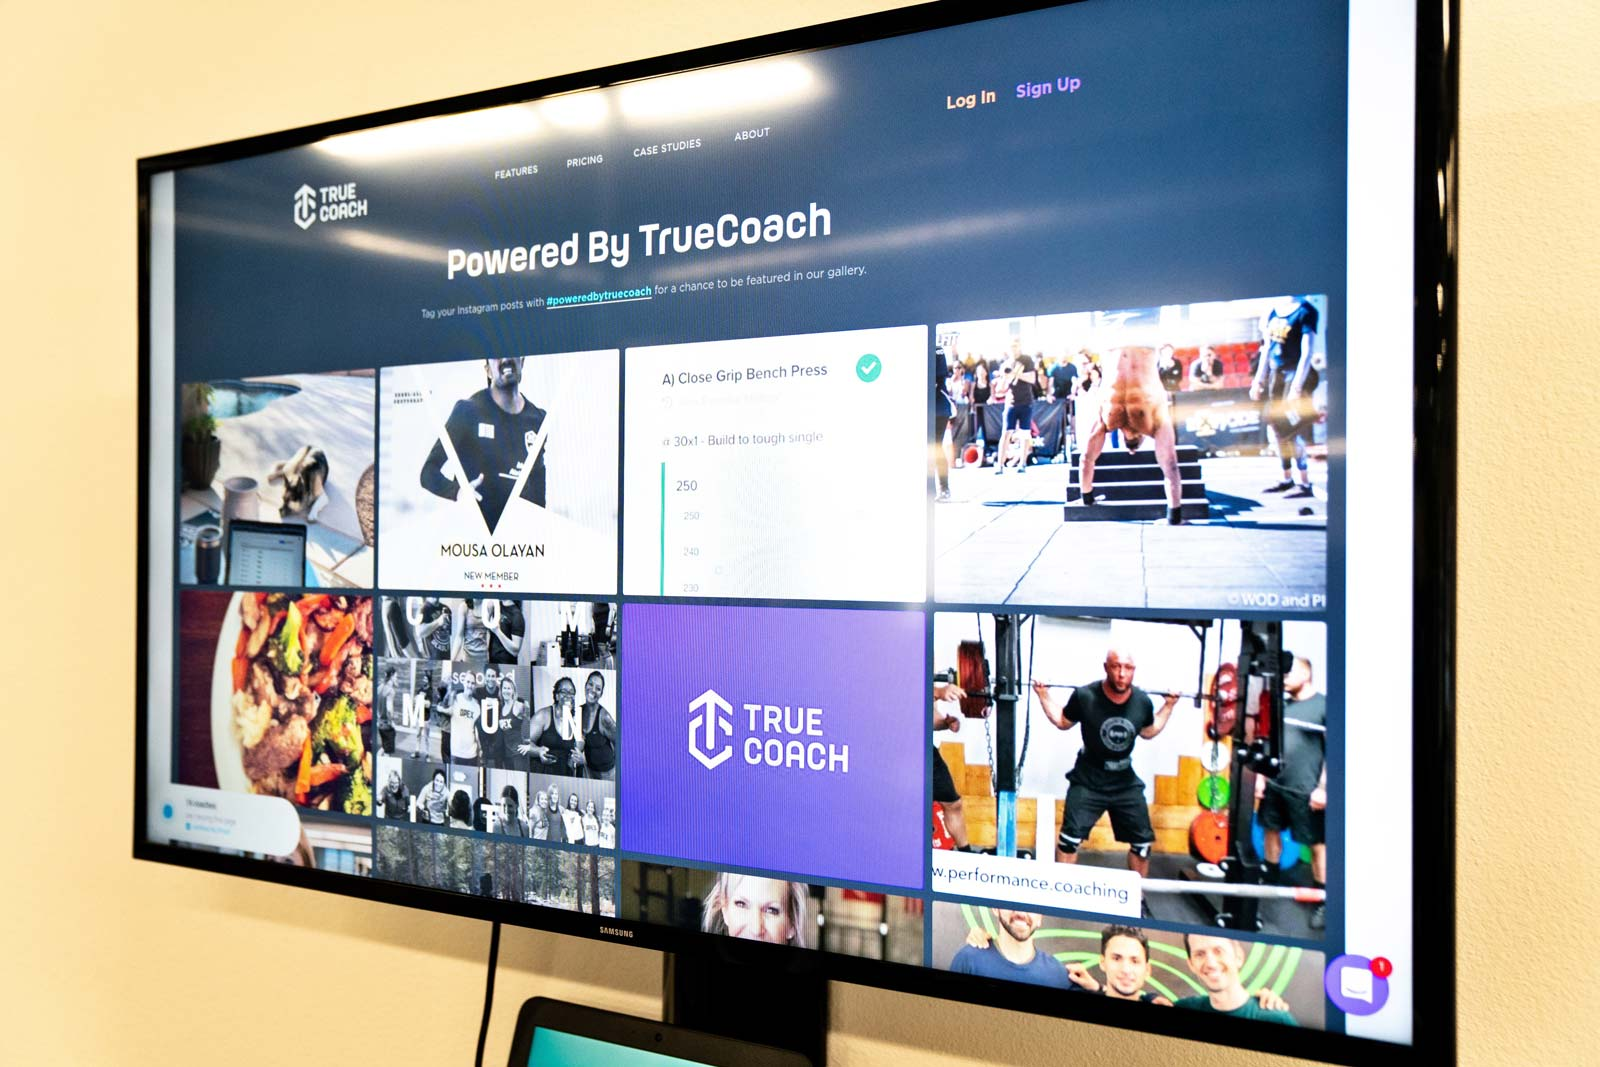 Poweredbytruecoach wall